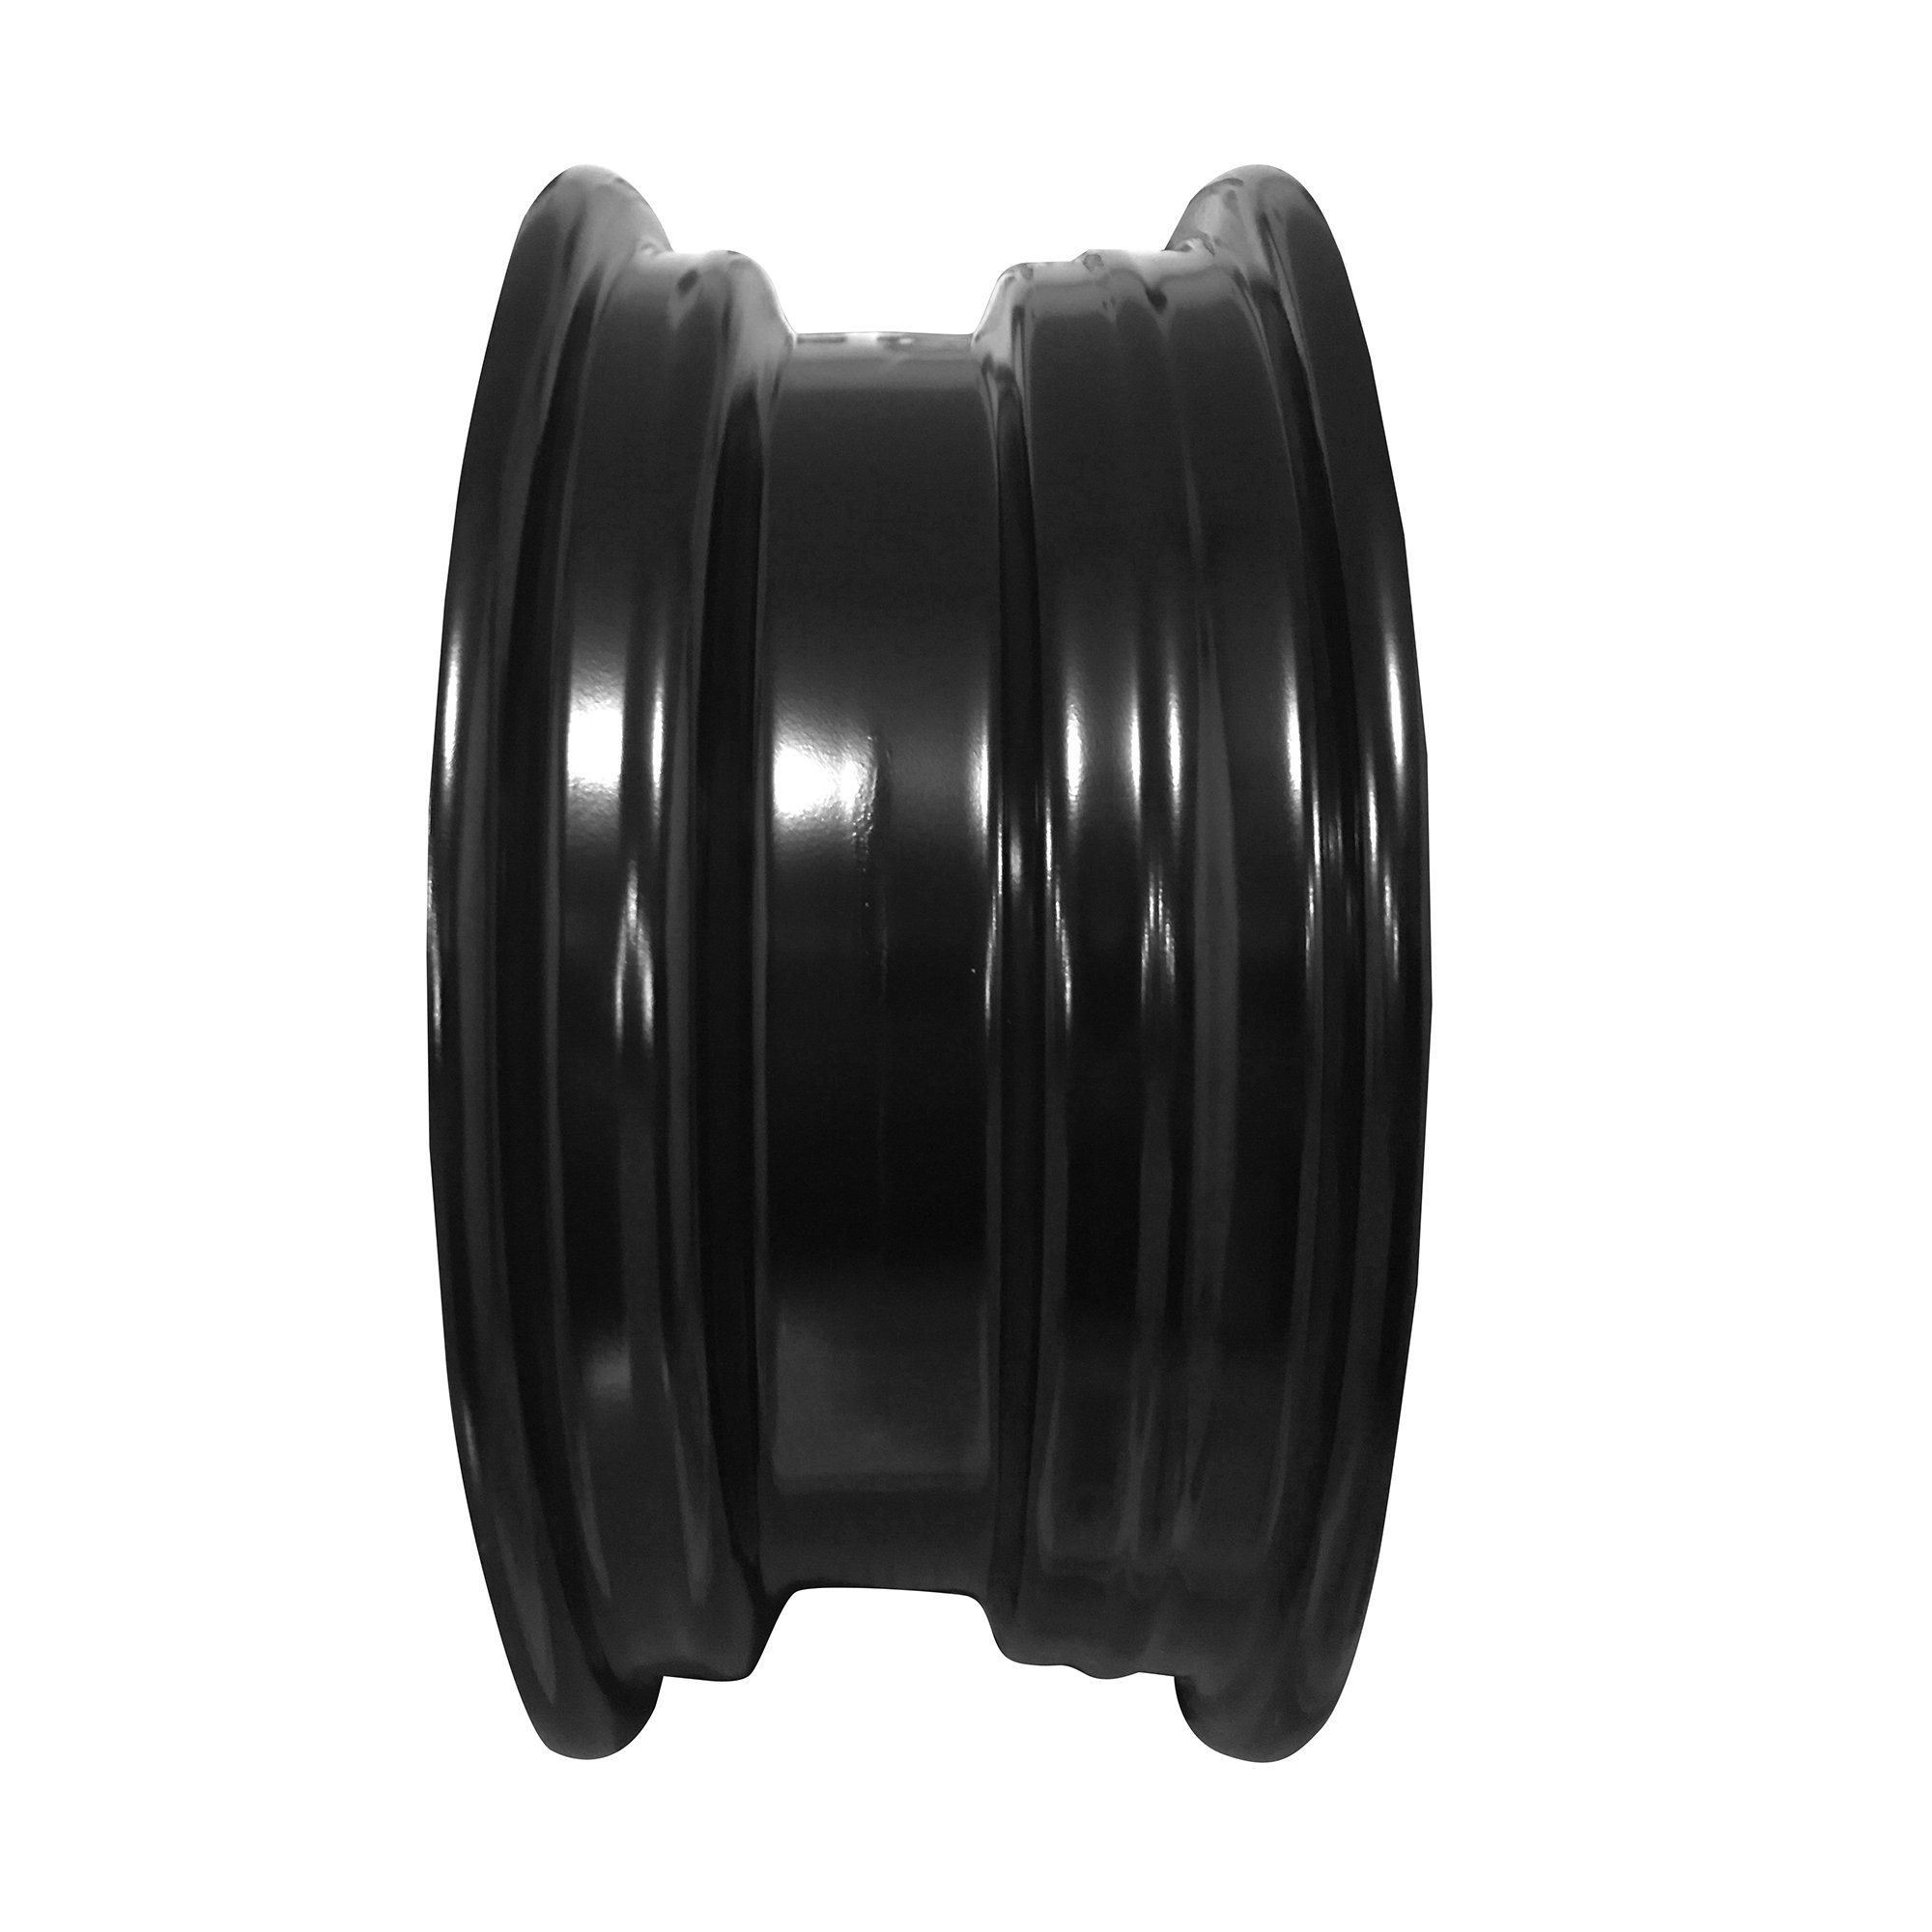 New 14x5 Inch 4 Lug 06-12 Toyota Yaris Full-Size Black Steel Replacement Wheel Rim by Road Ready Wheels (Image #4)